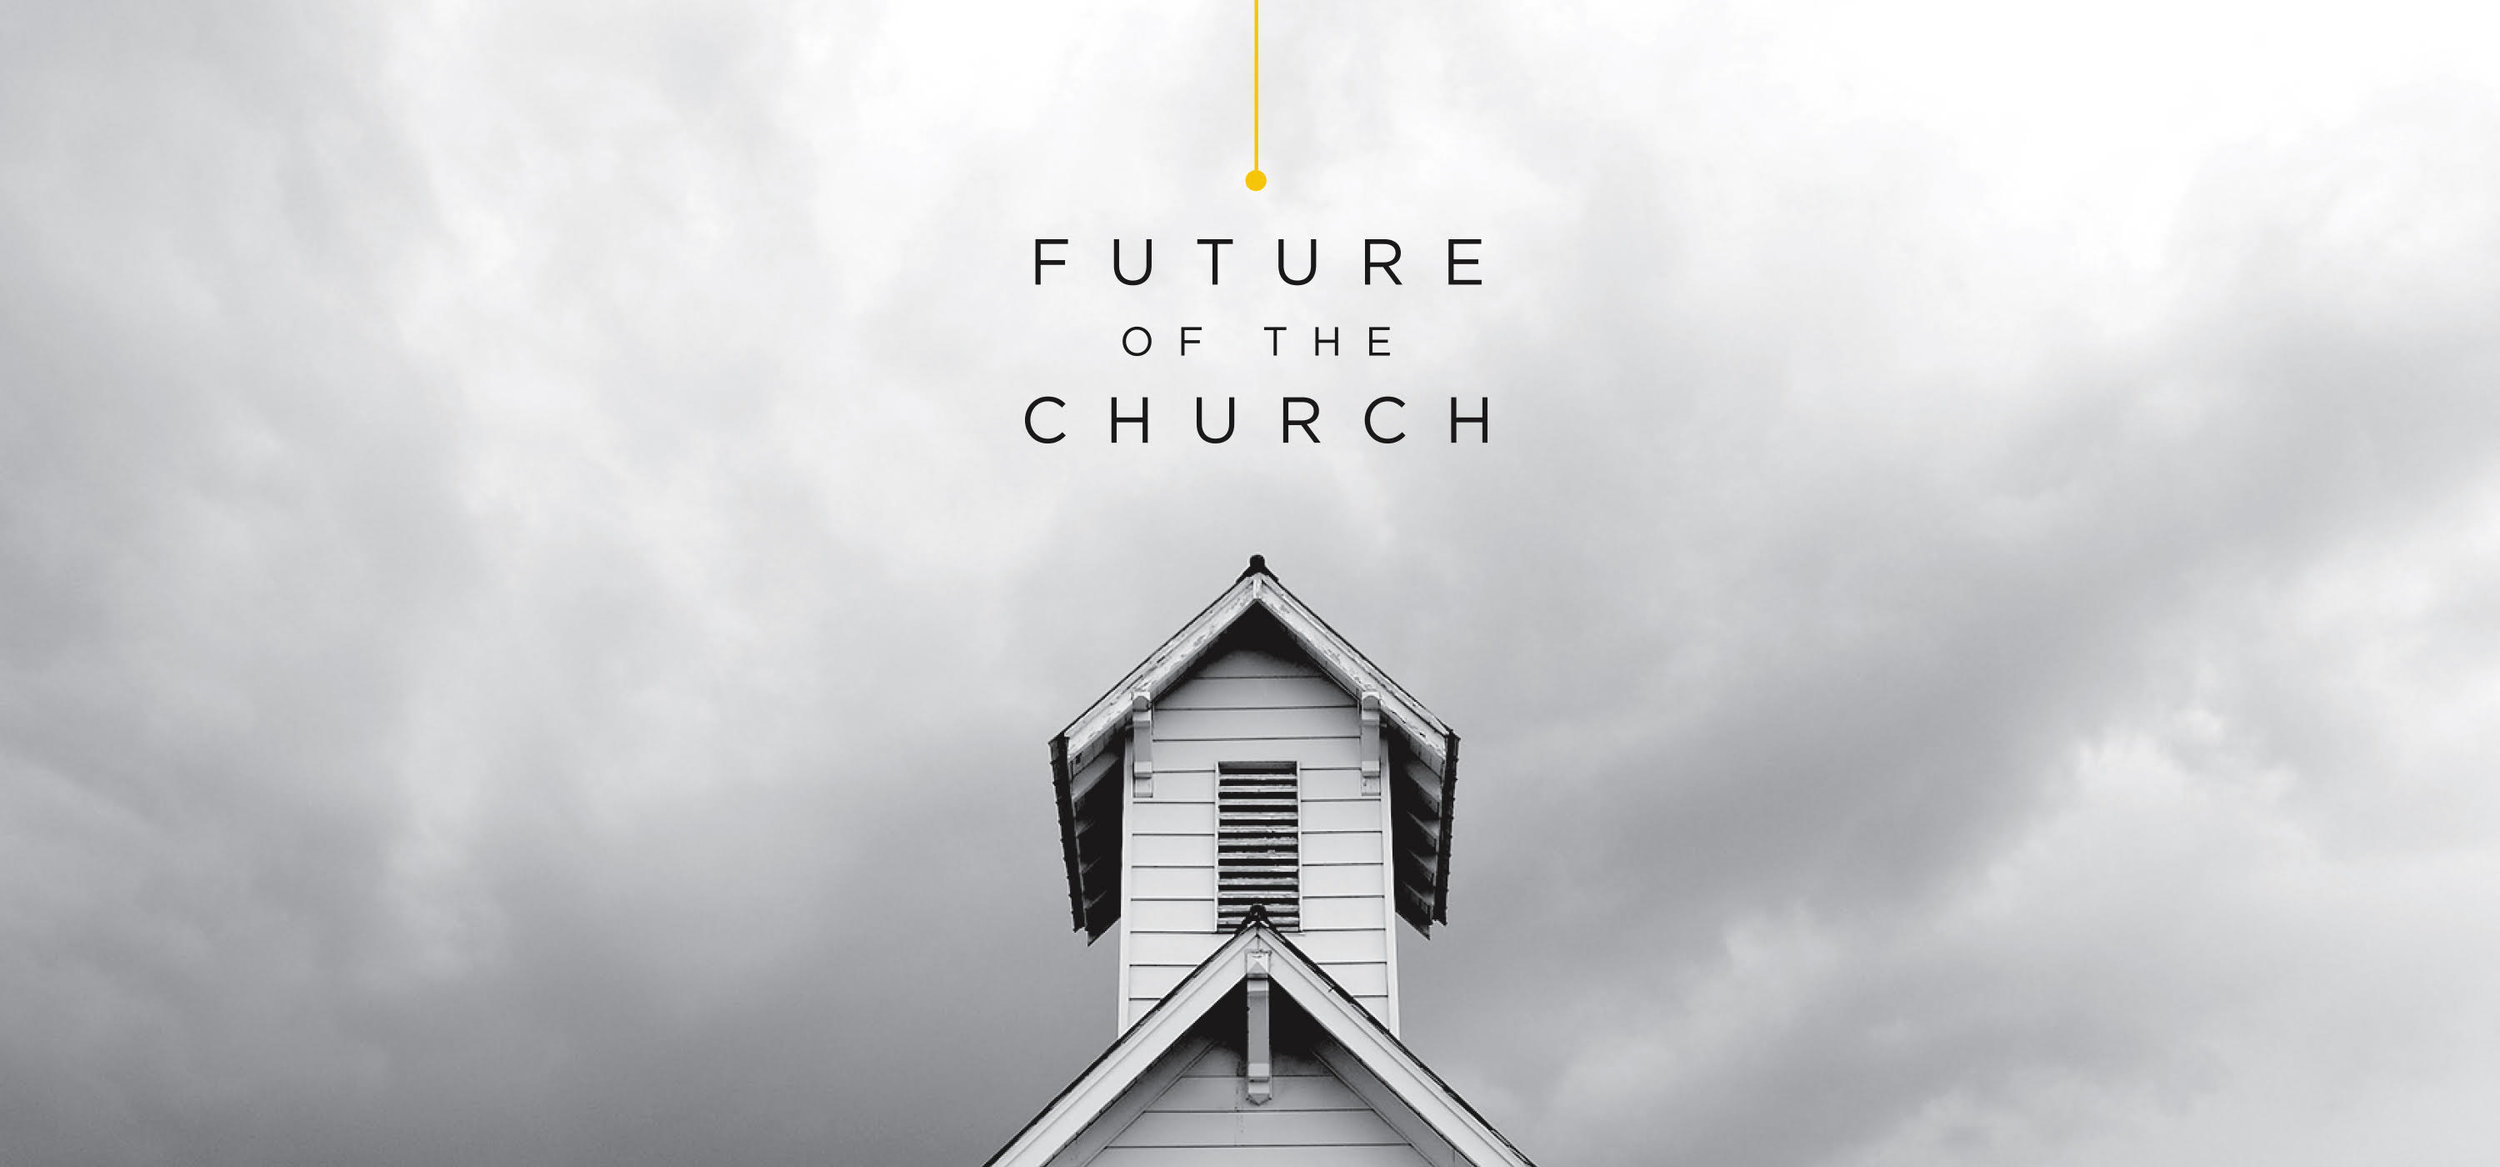 futureofthechurch